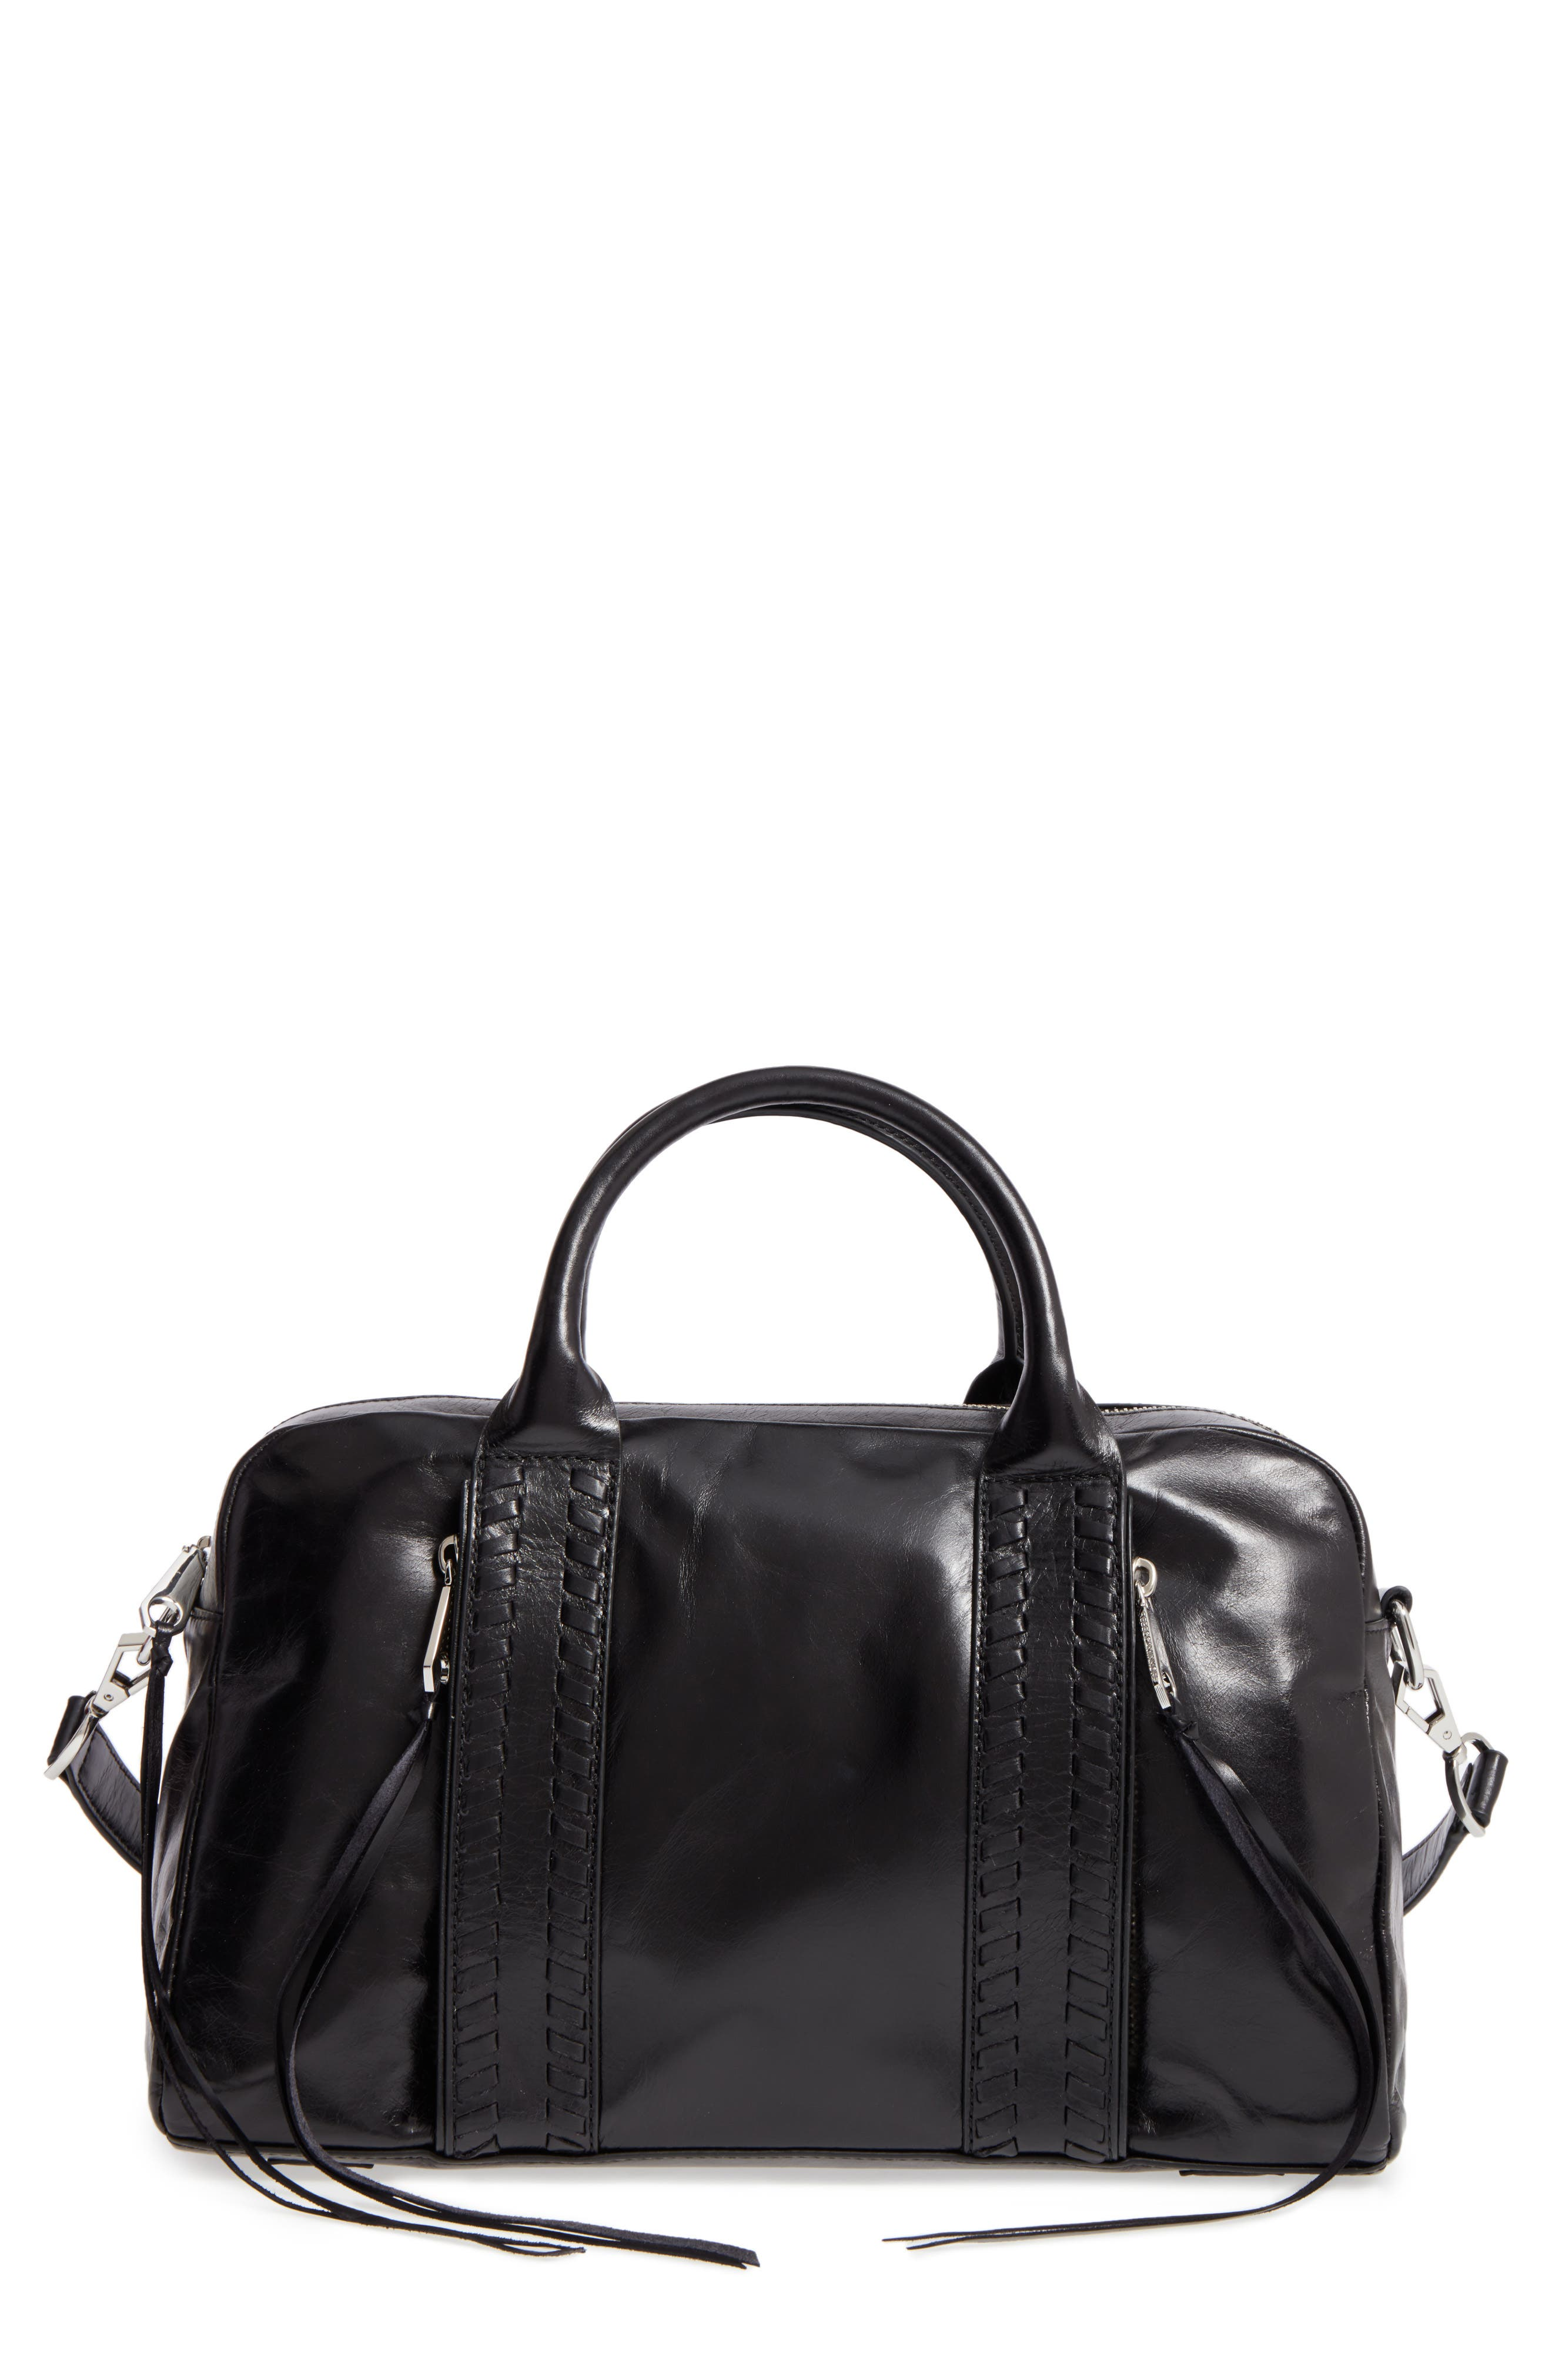 Rebecca Minkoff Vanity Leather Zip Satchel